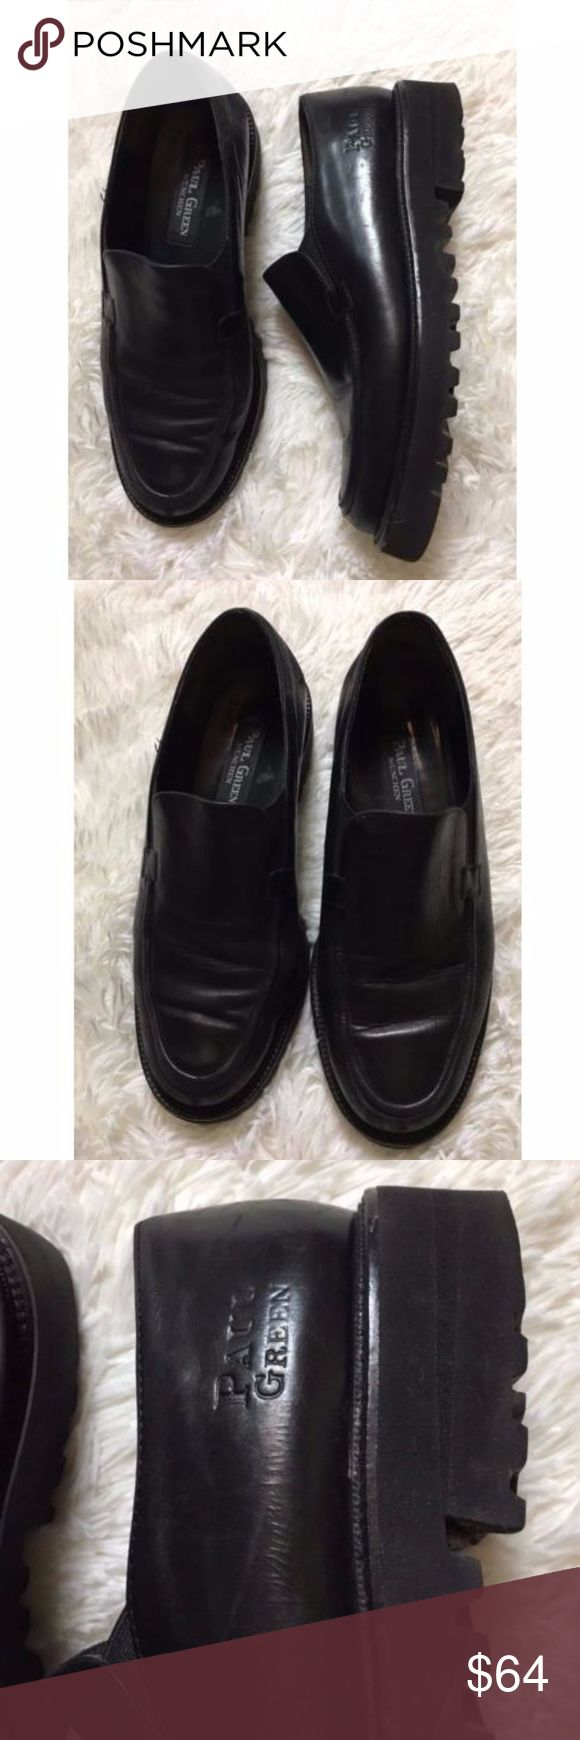 Paul Green 7 Jojo Loafer Black Leather Platform Paul Green 7 Womens Jojo Loafer Black Leather Mod Platform Sole Slip ons sz 7 Womens size 7 Size is missing, I am estimating size 7 by fit. I am a size 7 and they fit perfectly, thank you Paul Green Shoes Flats & Loafers